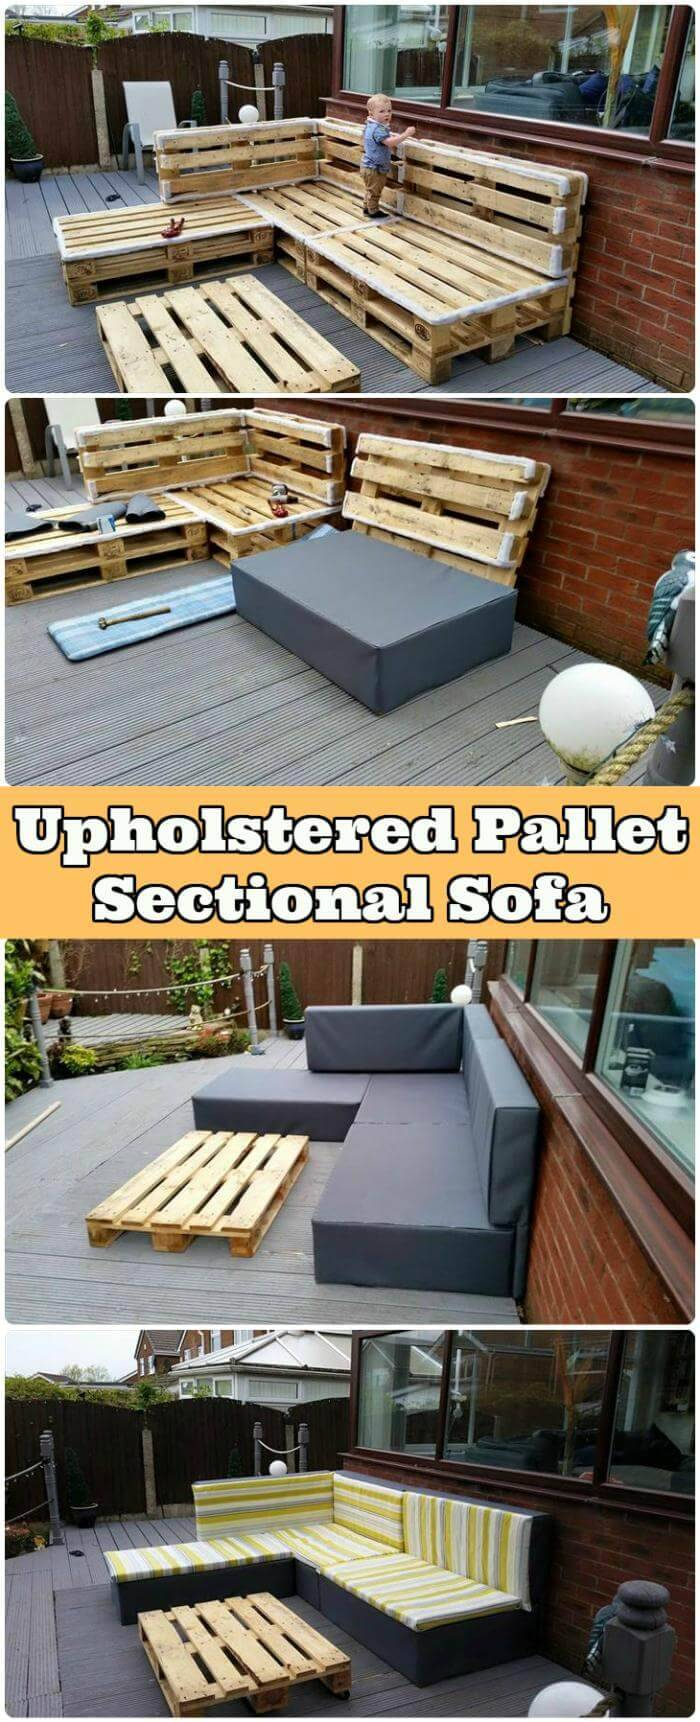 Upholstered Pallet Sectional Sofa